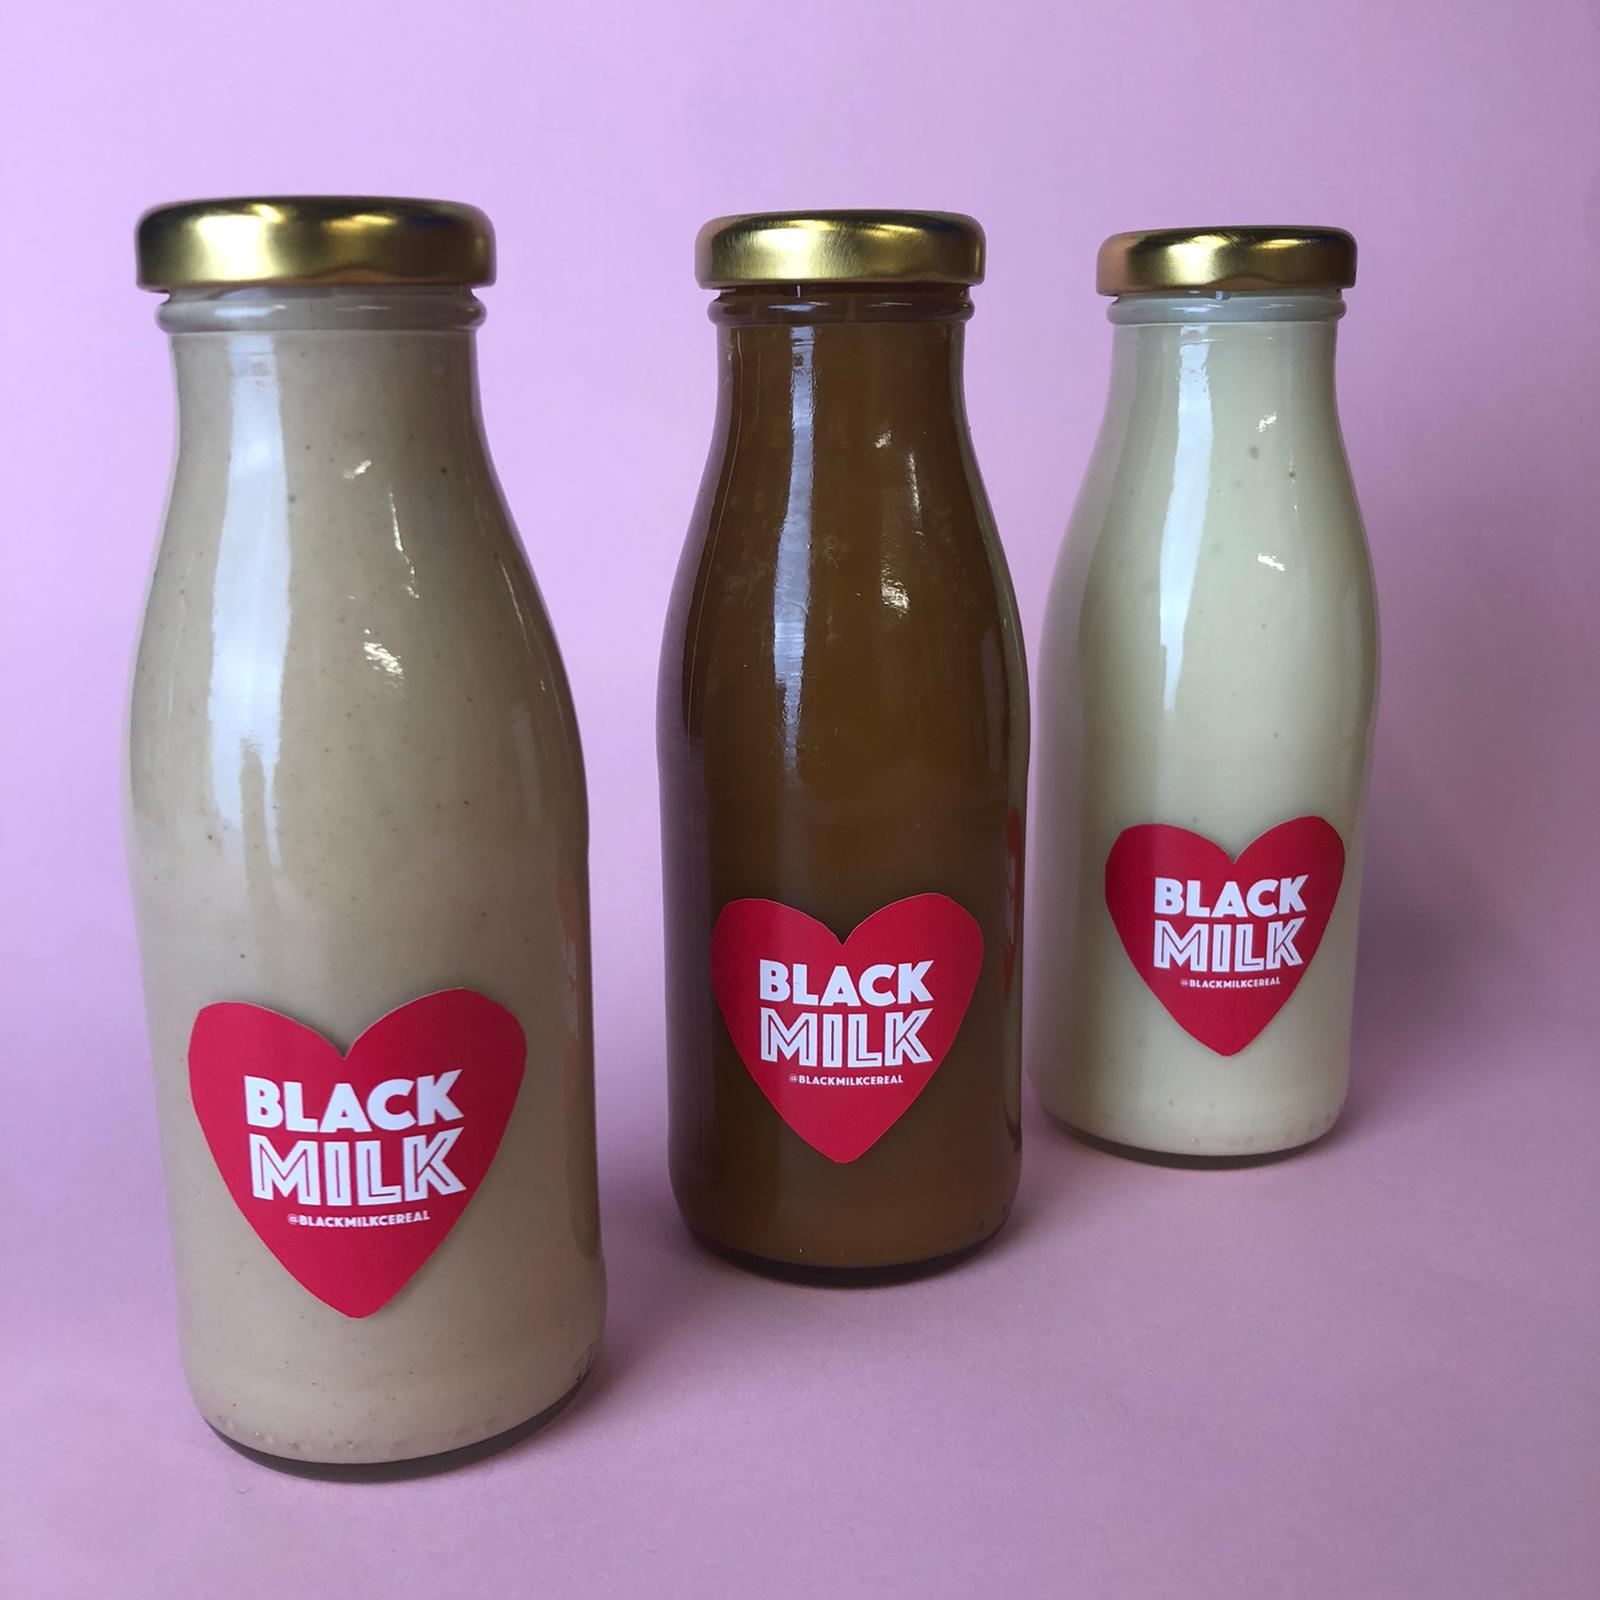 Black Milk Sauce Pack Gift Box